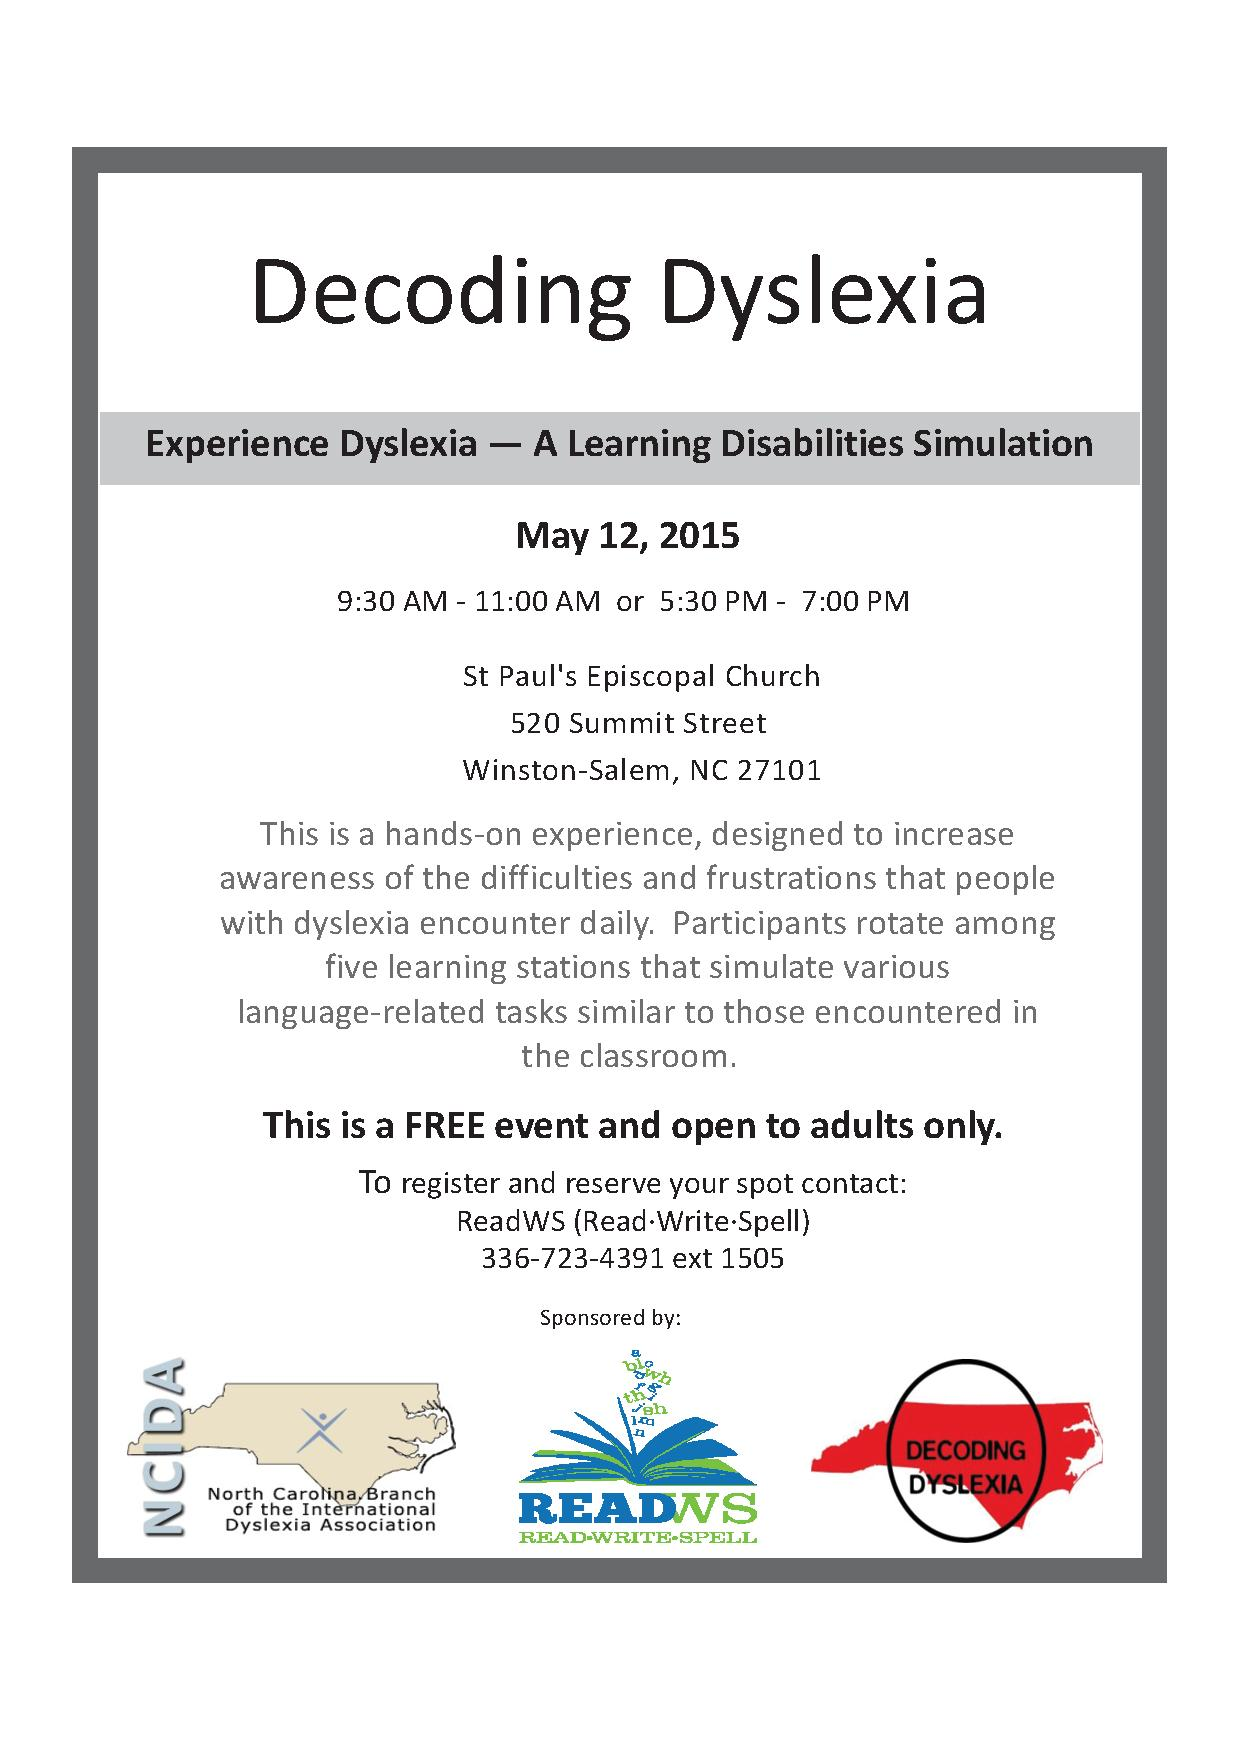 Decoding Dyslexia Event May 2015